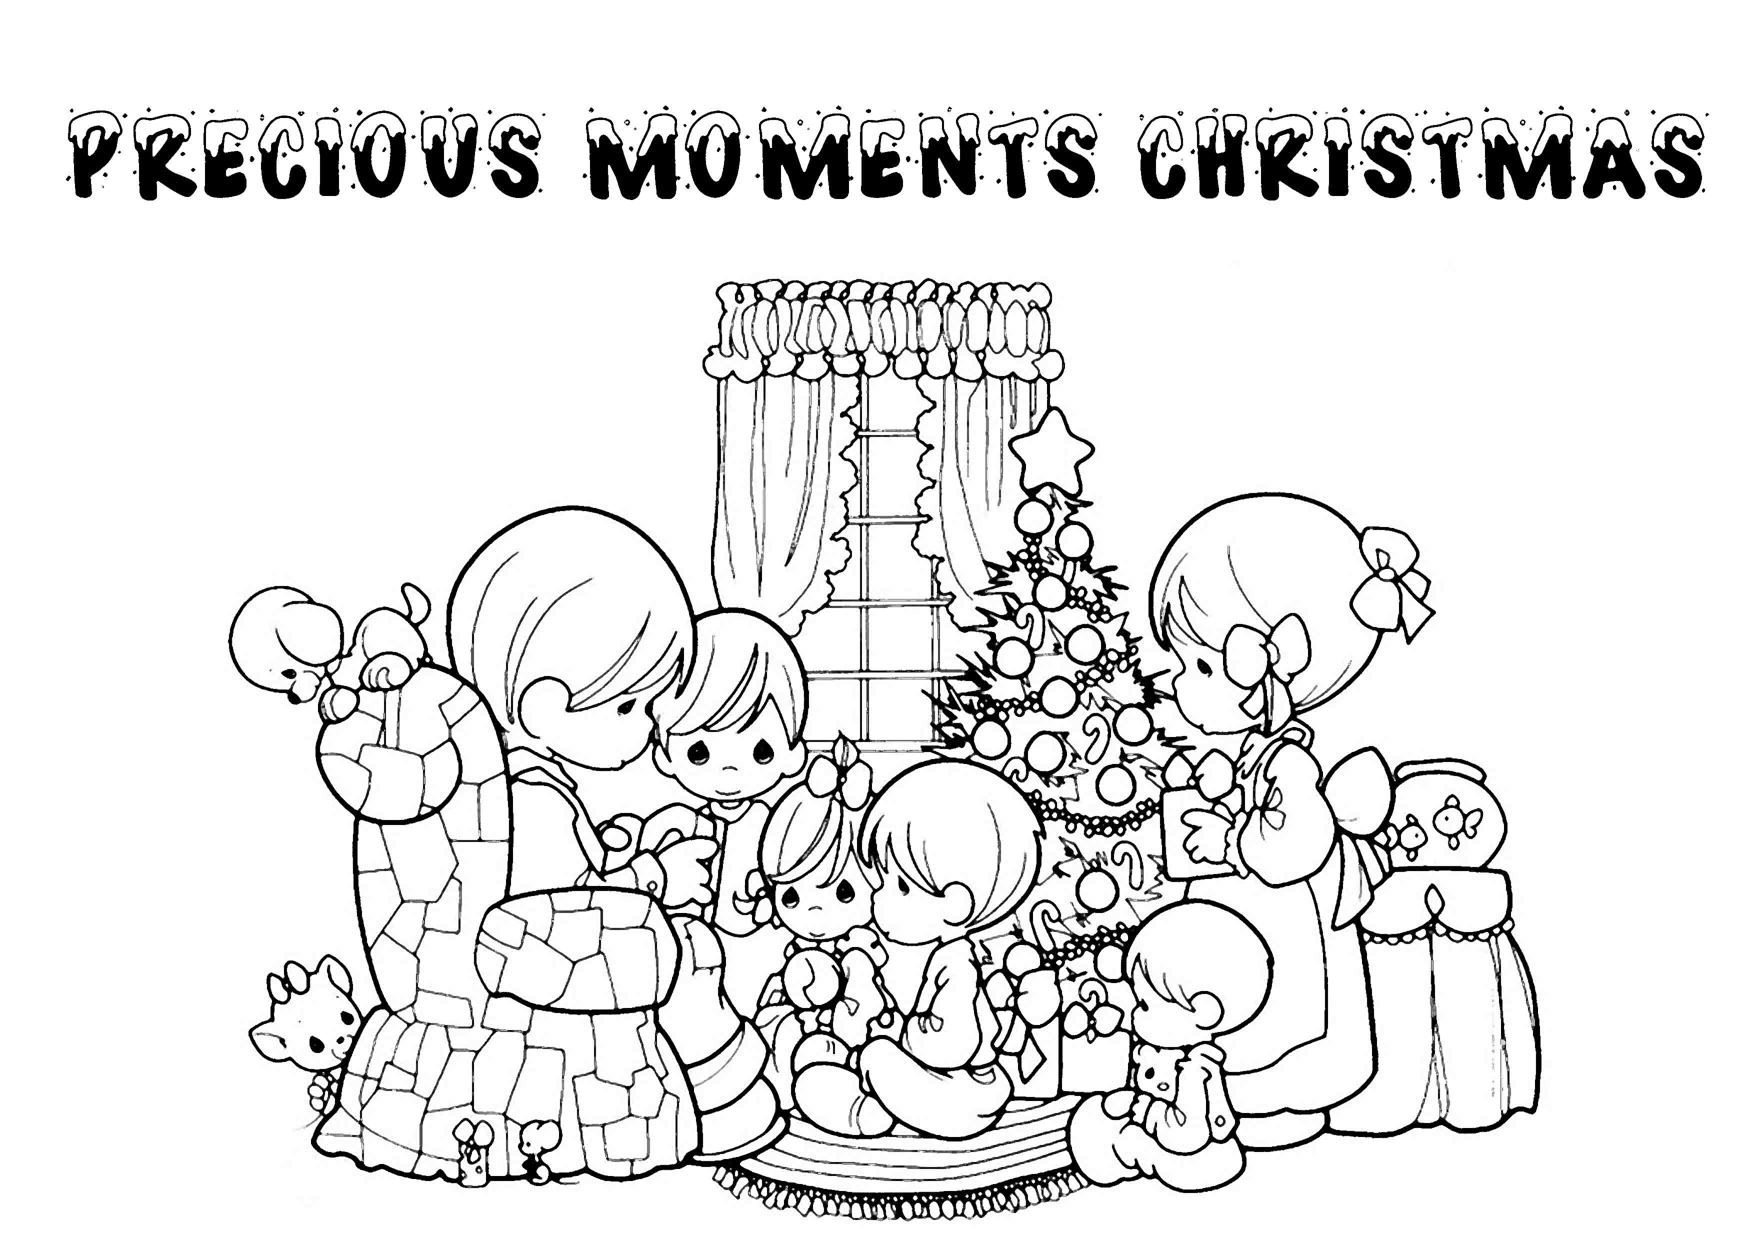 Christmas Color Pages For Kids Cooloring Book Free Printable Christmas Coloring Pages For Kids